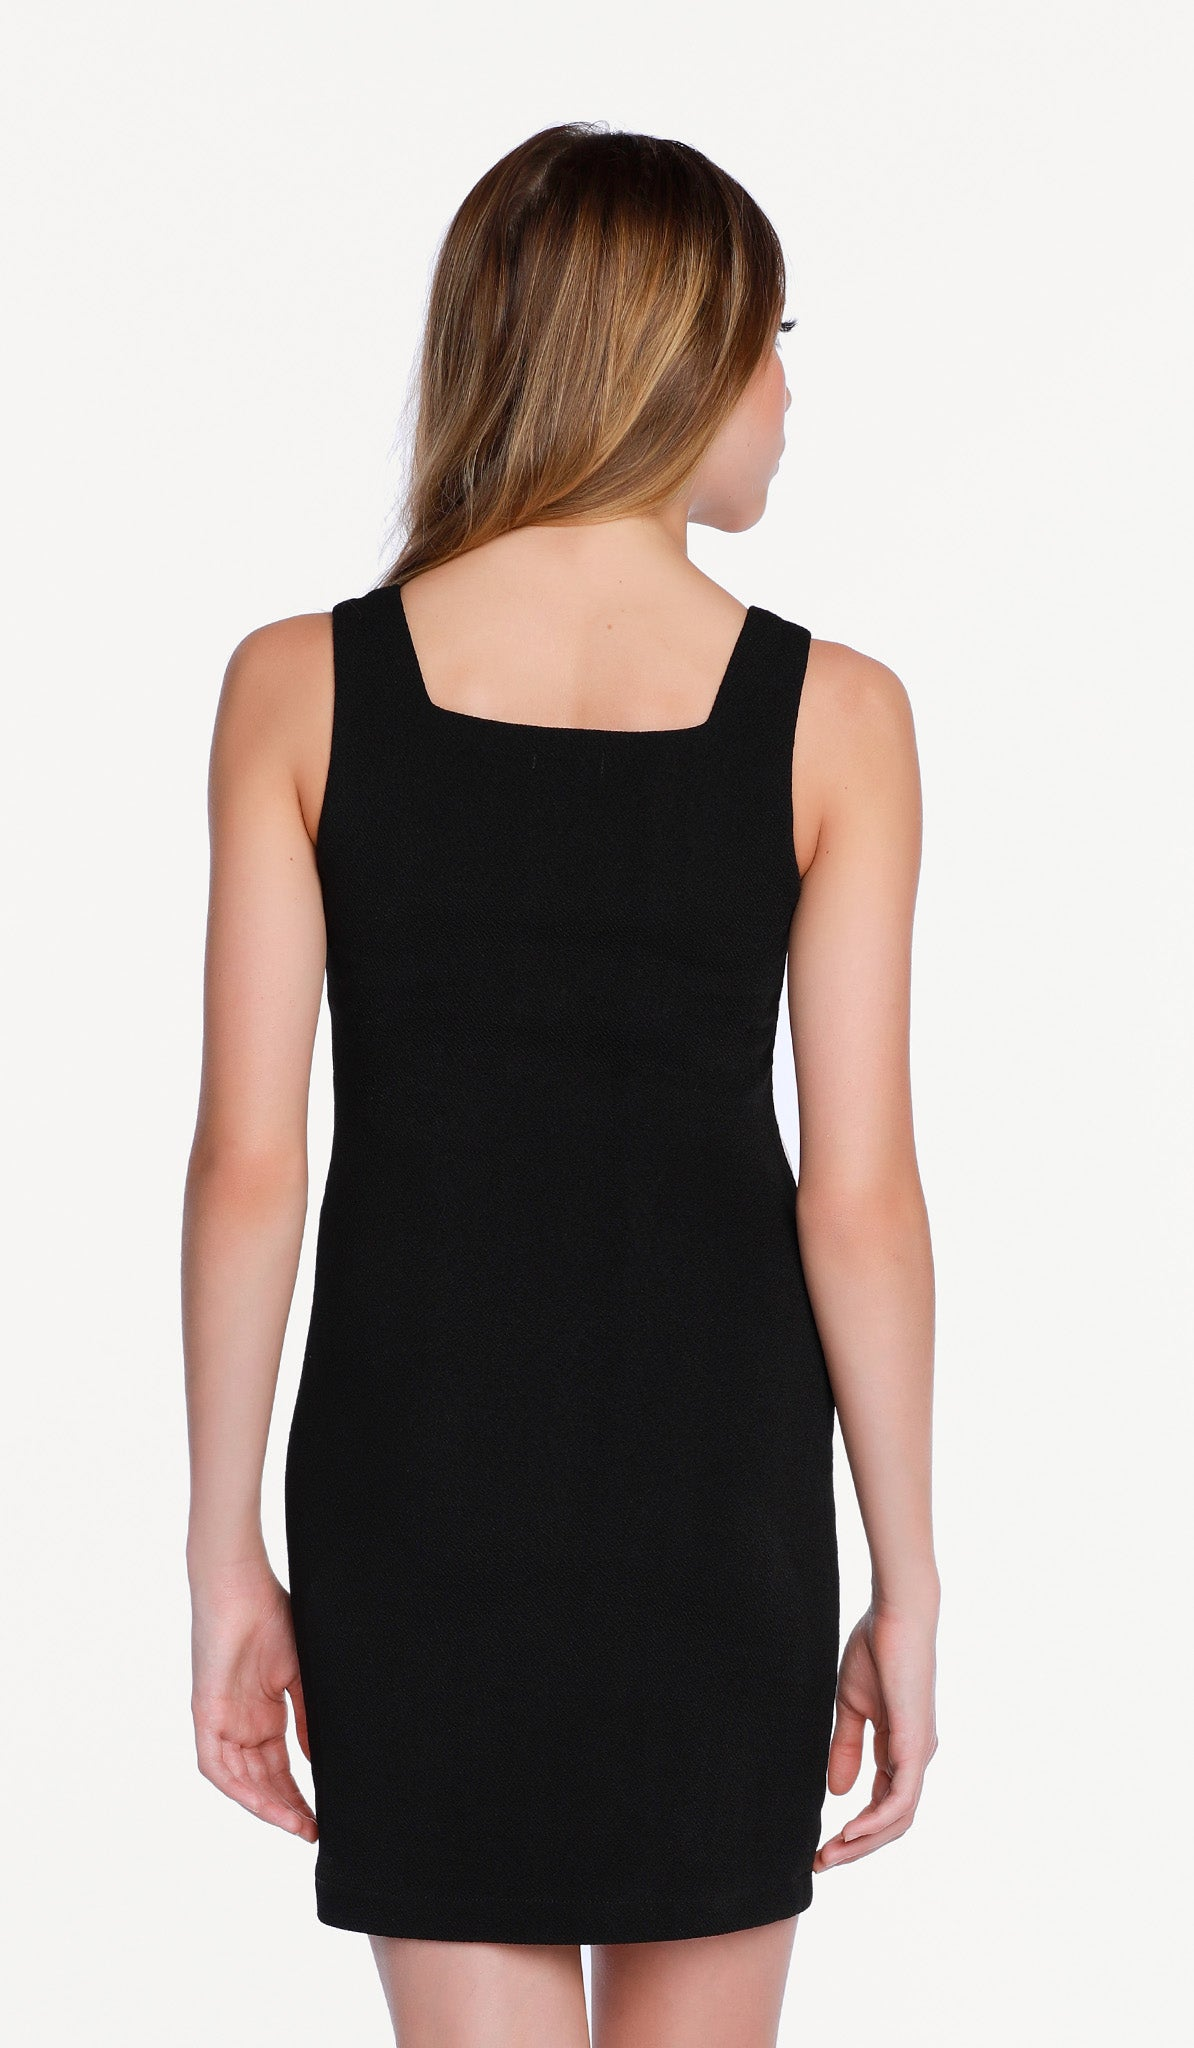 The Sally Miller Gia Dress - Black stretch textured knit body con dress with ivory waist detail